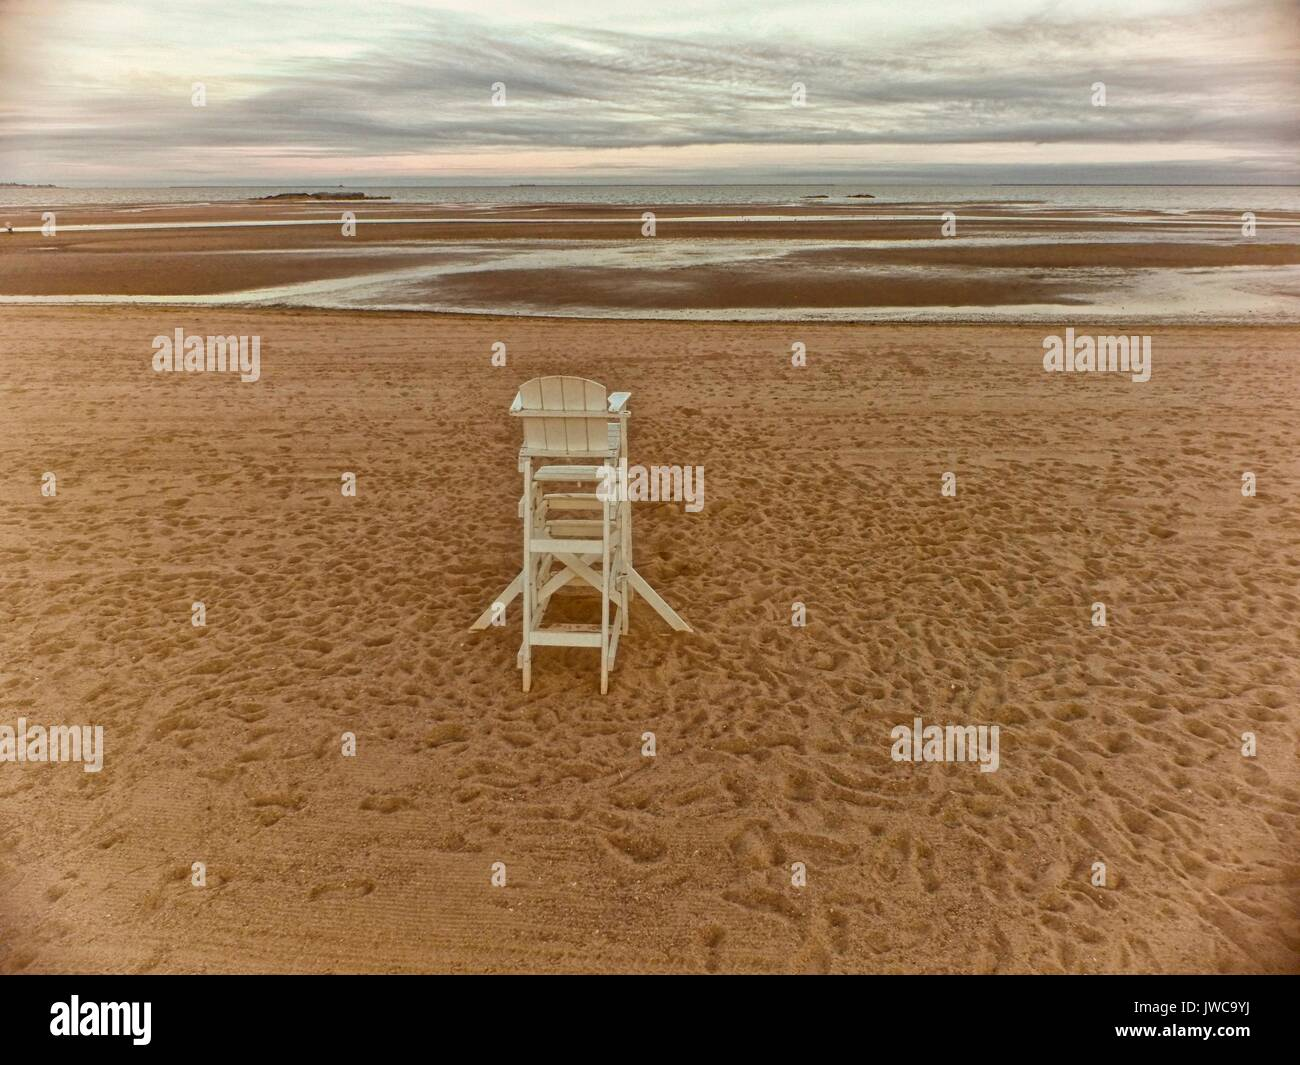 A lifeguard observation chair on a beach in New Haven,Connecticut. - Stock Image